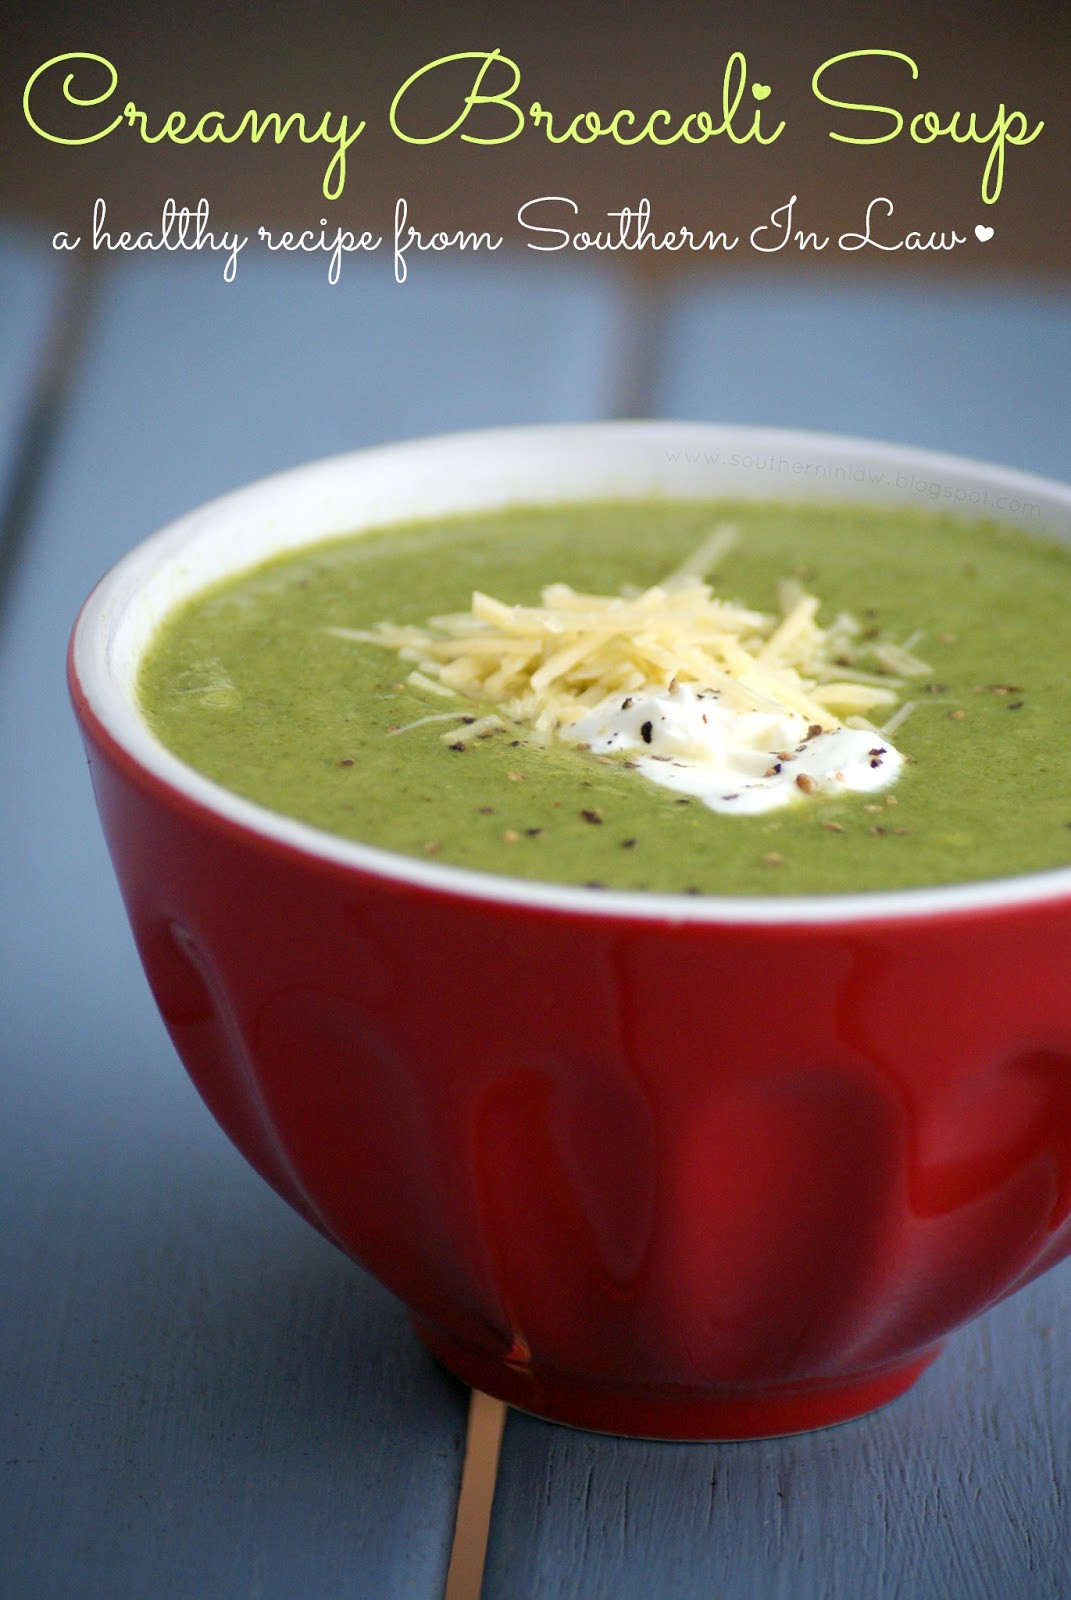 Healthy Broccoli Soup Recipe  Southern In Law Creamy Broccoli Soup Recipe